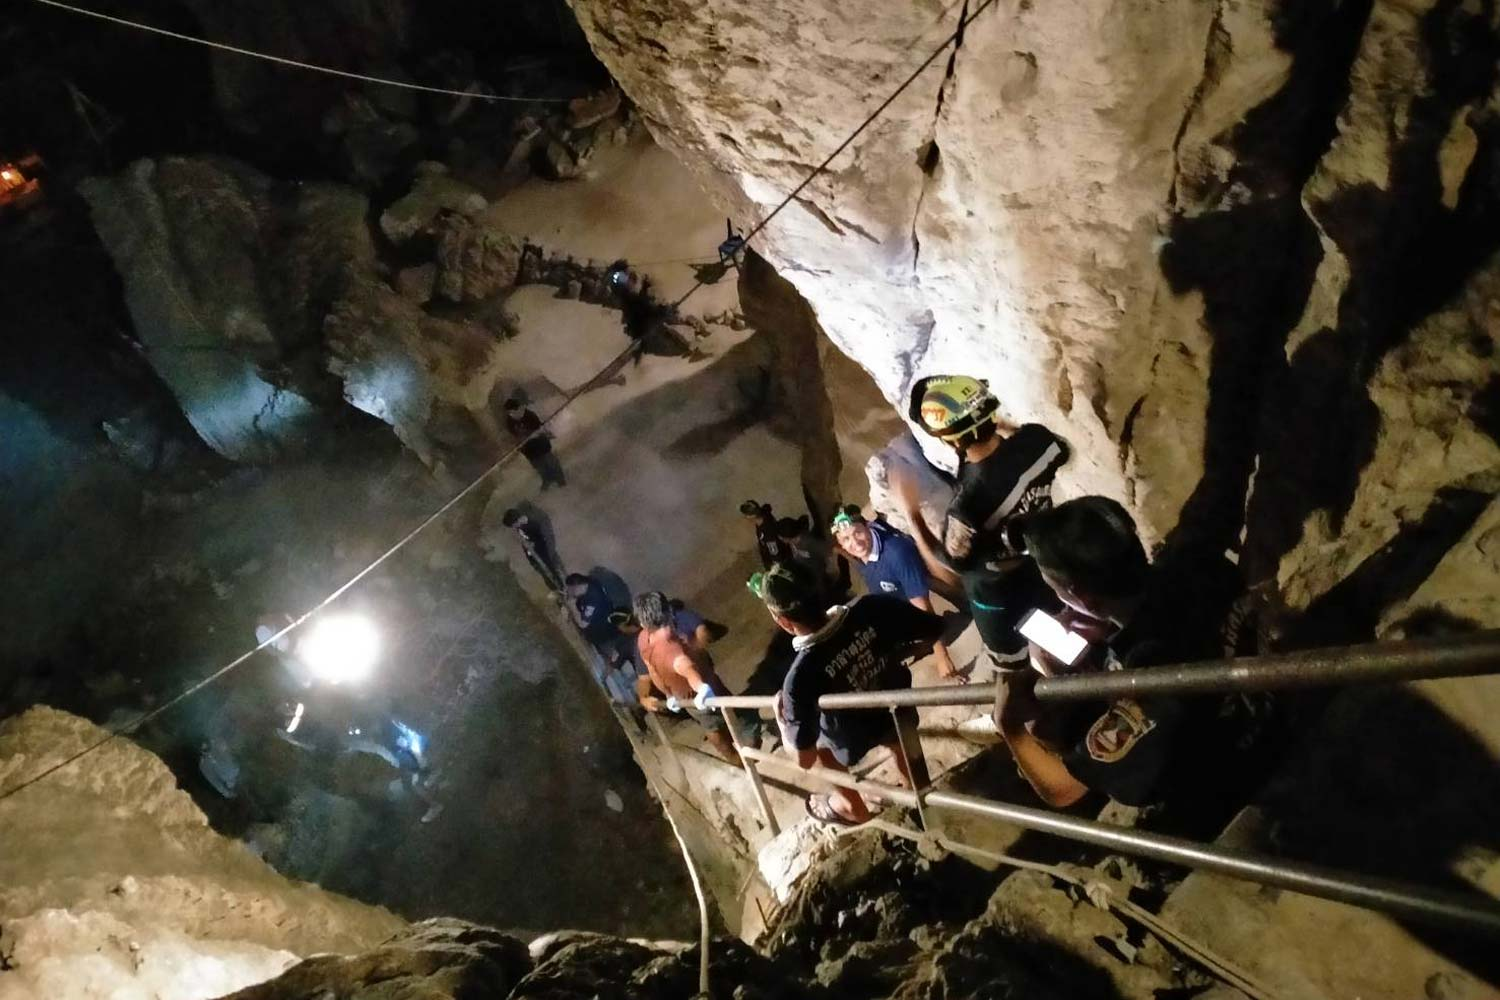 Rescuers descend a staircase to the ground floor of Tham Takfa cave in Nakhon Si Thammarat's Phrom Khiri district, where a monk was found dead after a fall on Sunday. (Photo by Nujaree Raekrun)